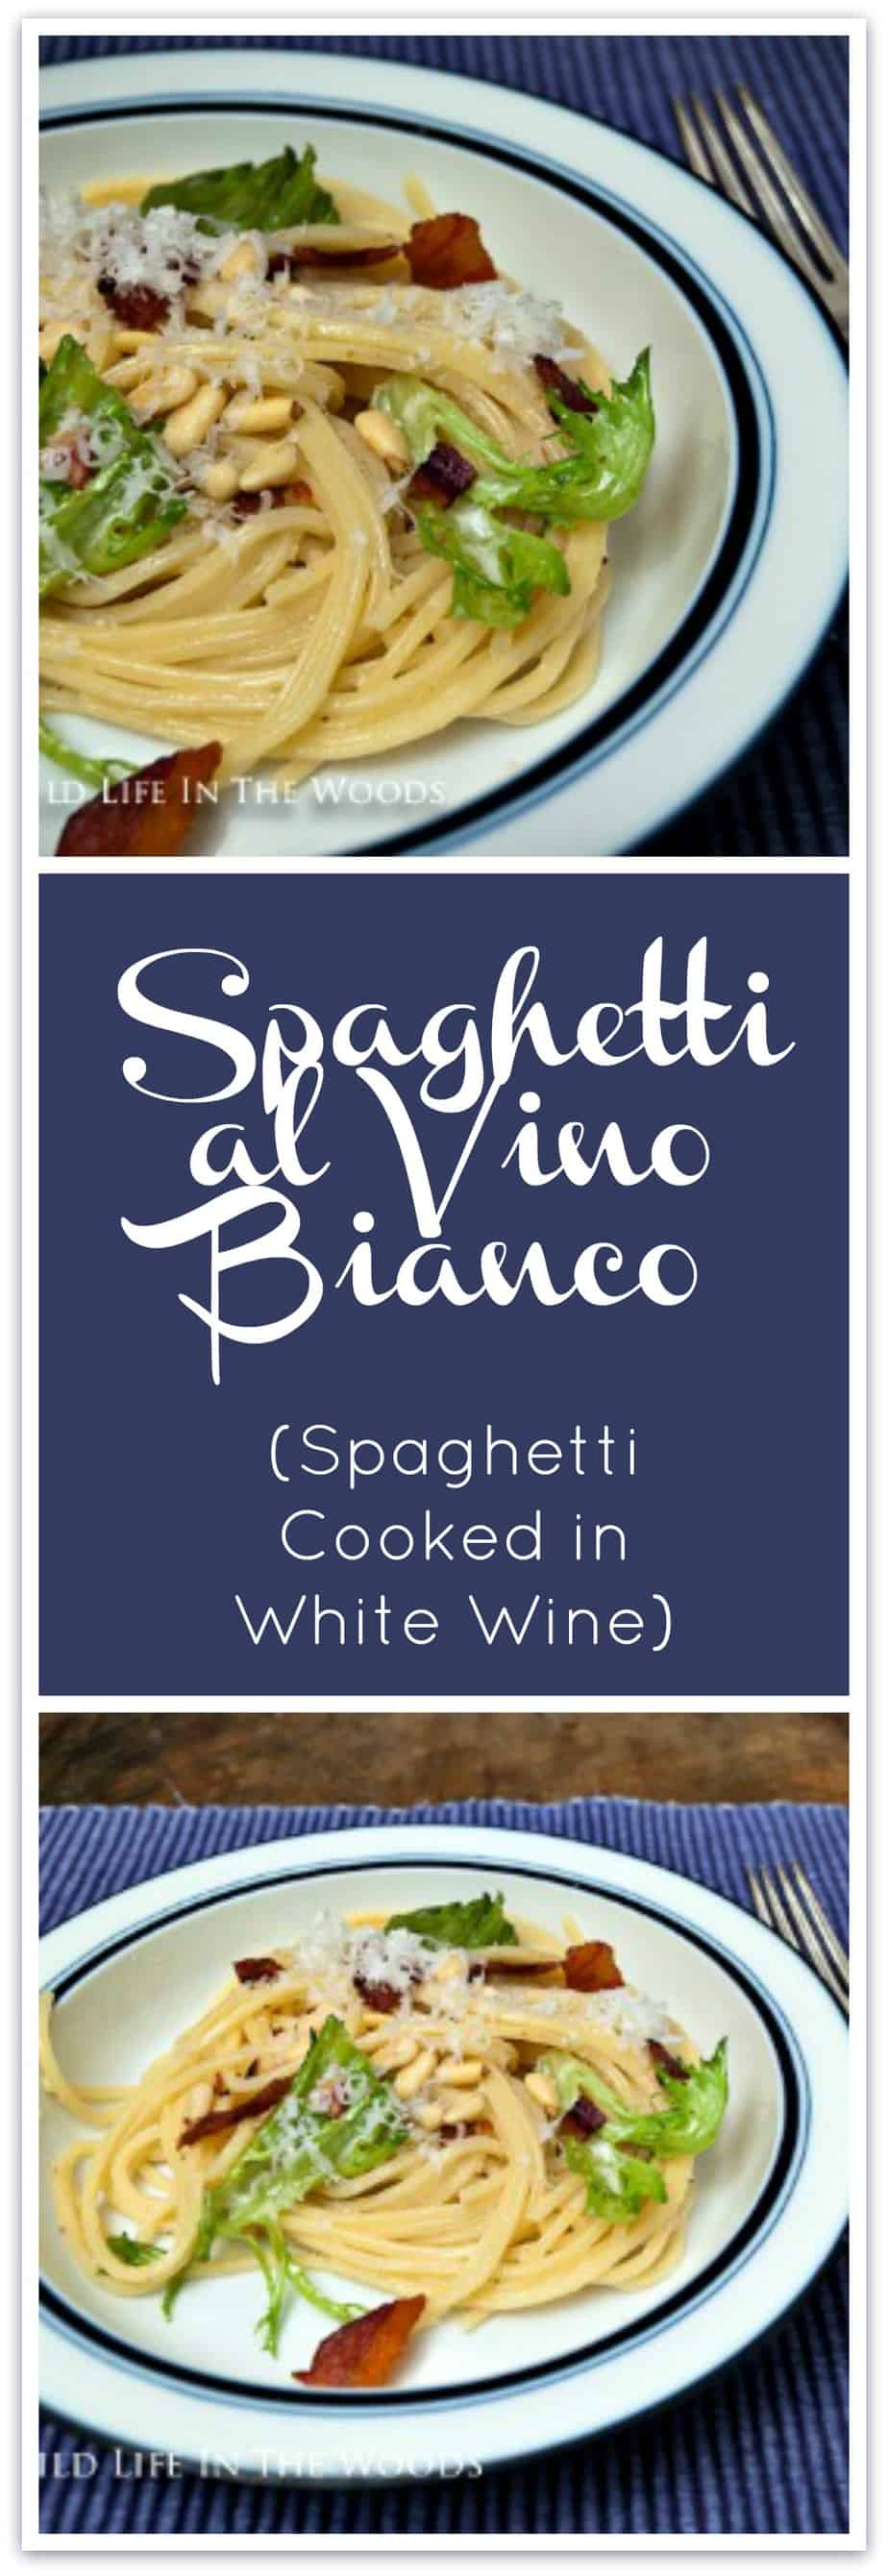 Spaghetti al Vino Bianco is a delicious recipe for pasta, where the pasta makes its own sauce by being finished in white wine.